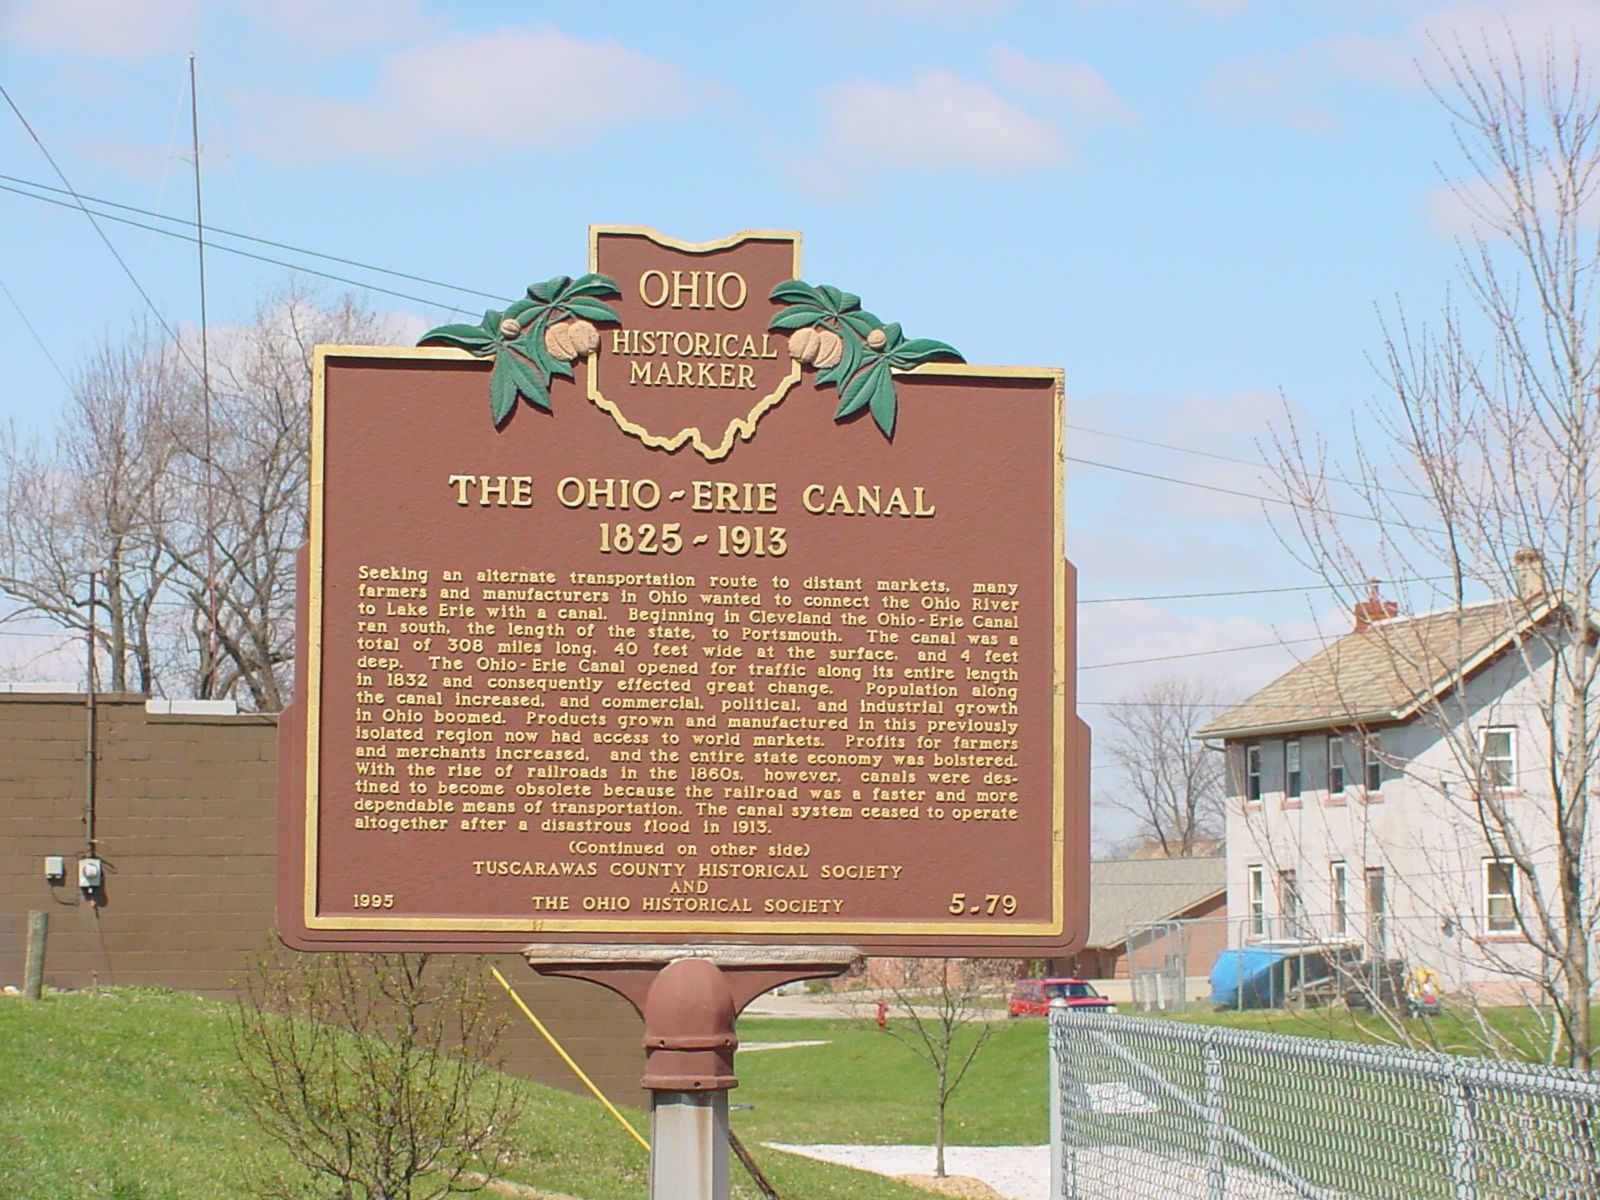 The Ohio-Erie Canal Marker